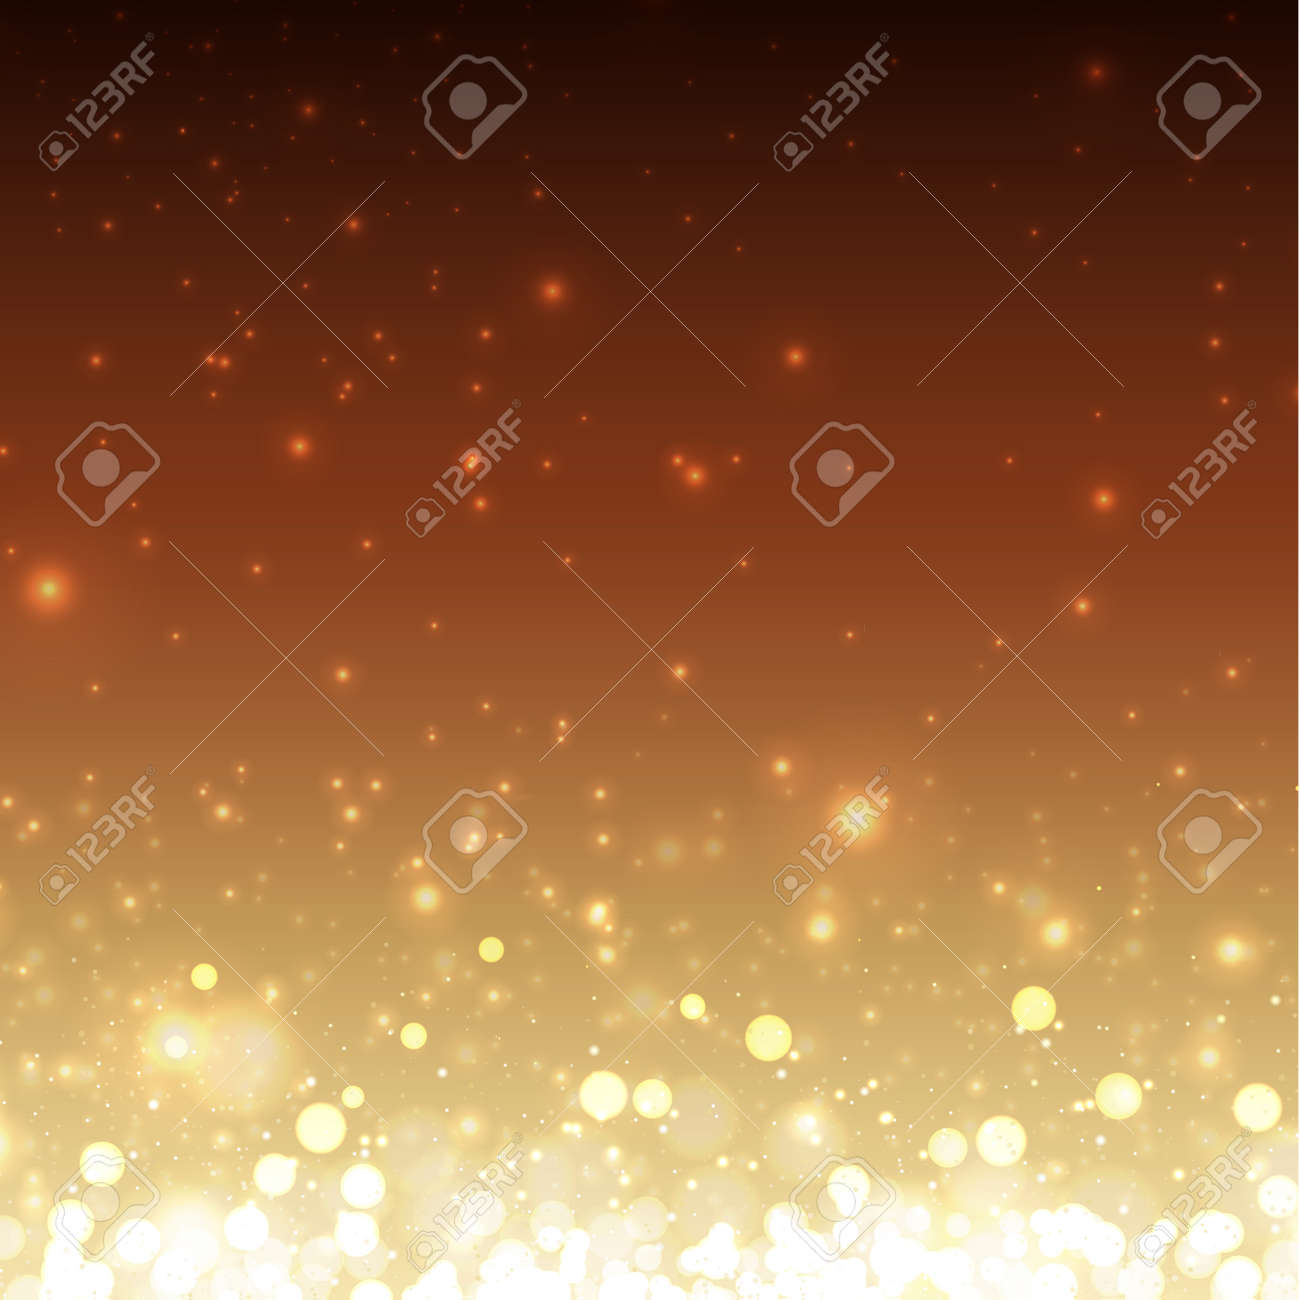 Bright bokeh with highlights on a dark background - Illustration - 158676428